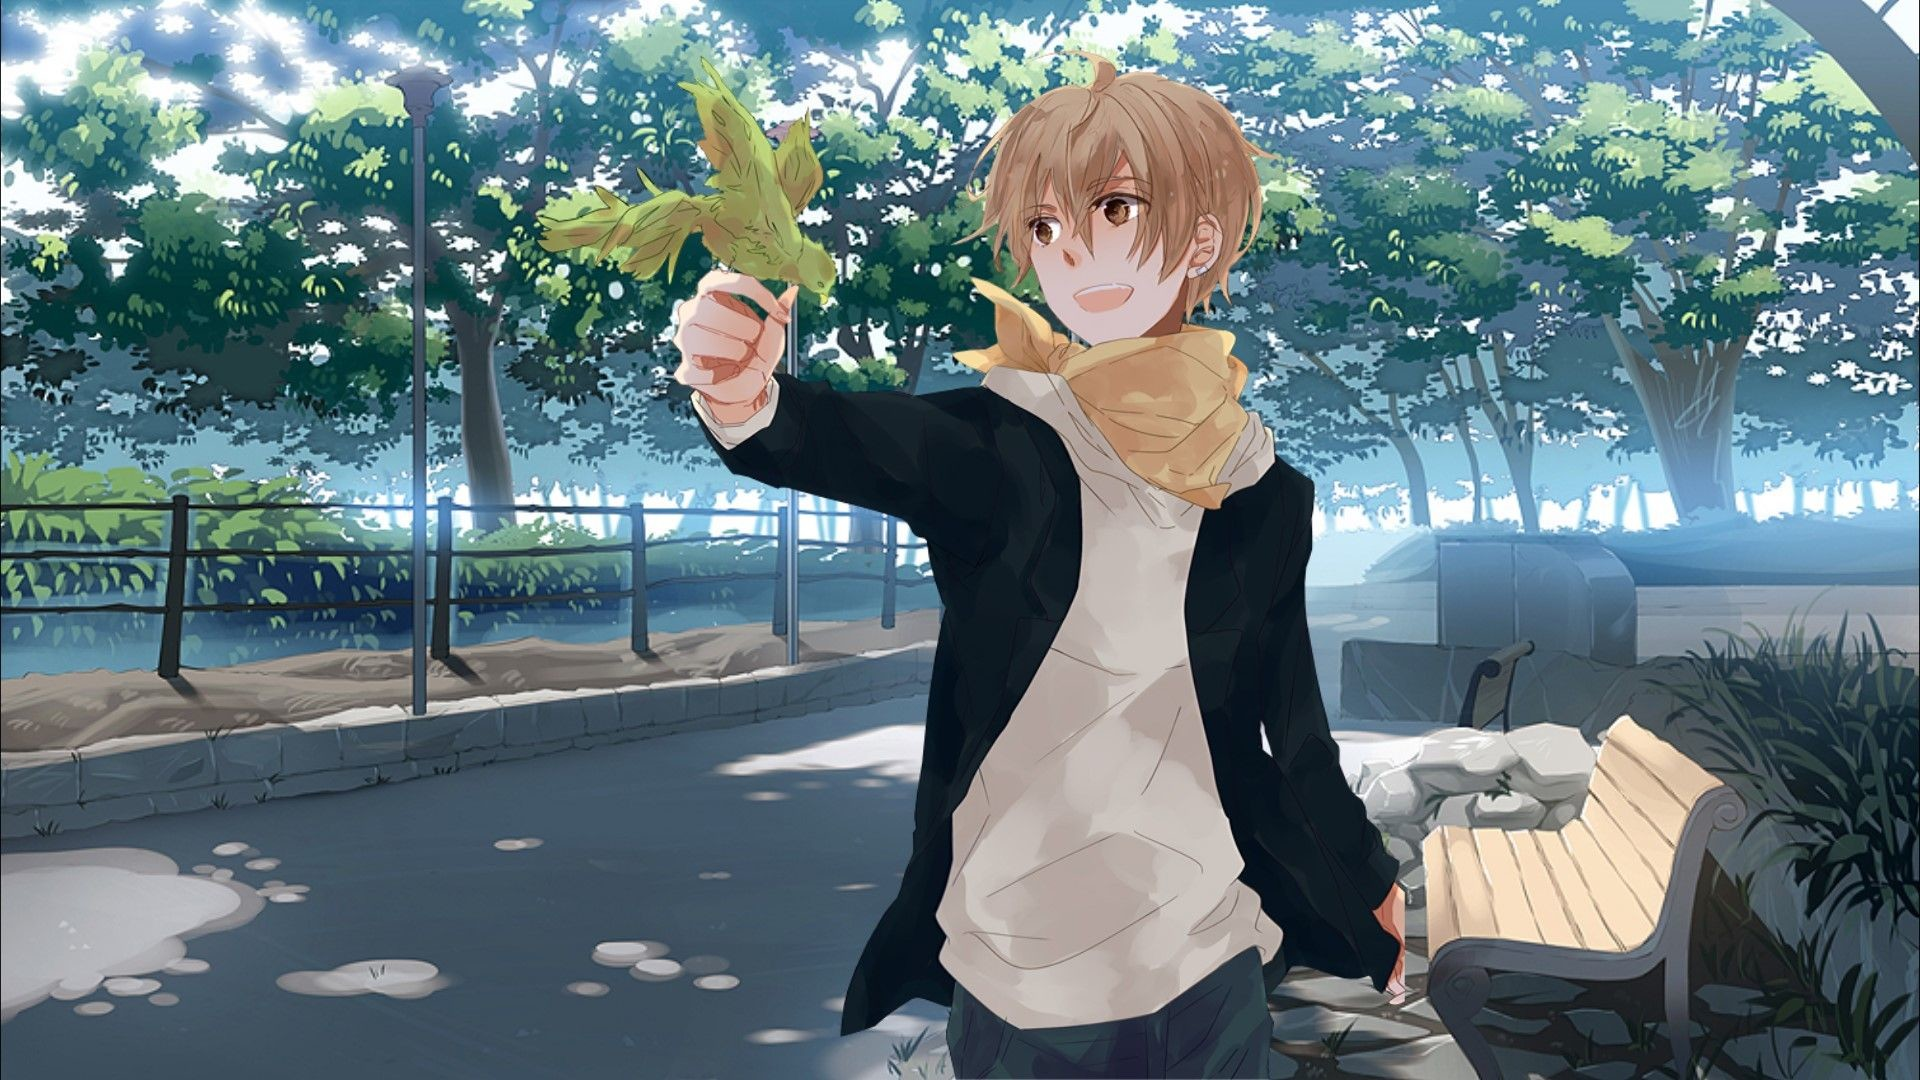 Anime Boy Wallpaper Backgrounds Anime Boy Wallpaper For Android